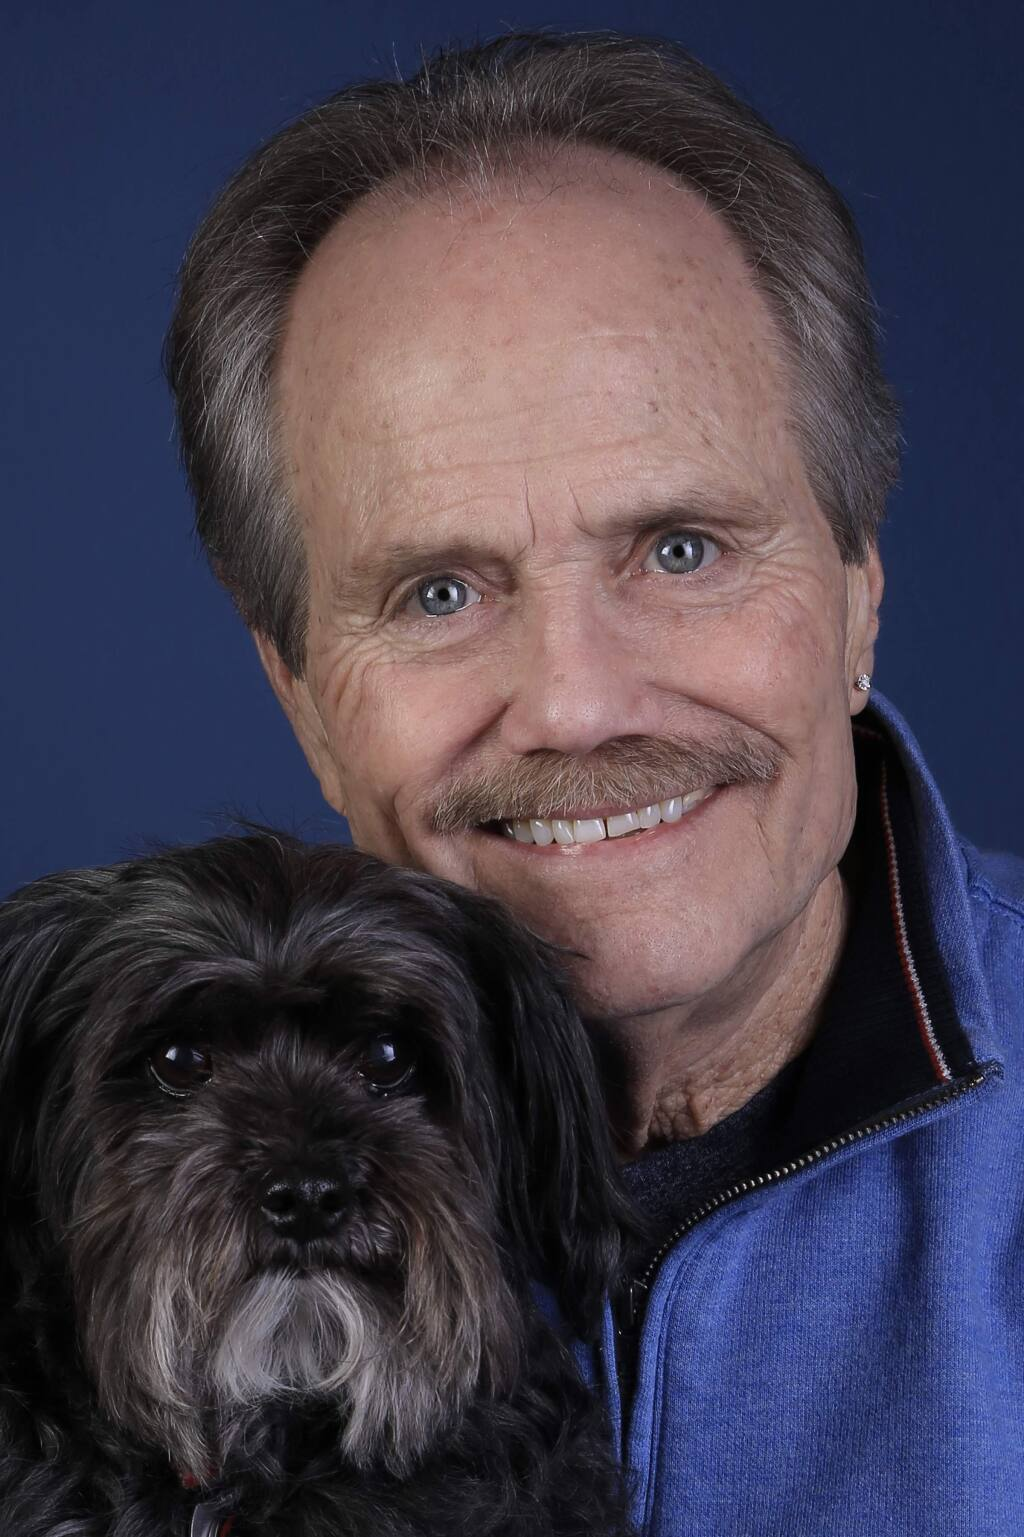 """Sonoma County resident Jon Provost, who starred as Timmy on the 1950s TV series """"Lassie"""" will appear at """"An Evening with John Provost of 'Lassie'"""" moderated by Jan Wahl, at the Sebastiani Theatre in Sonoma on Monday, Feb. 24, 2020. (RONEPHOTO)"""